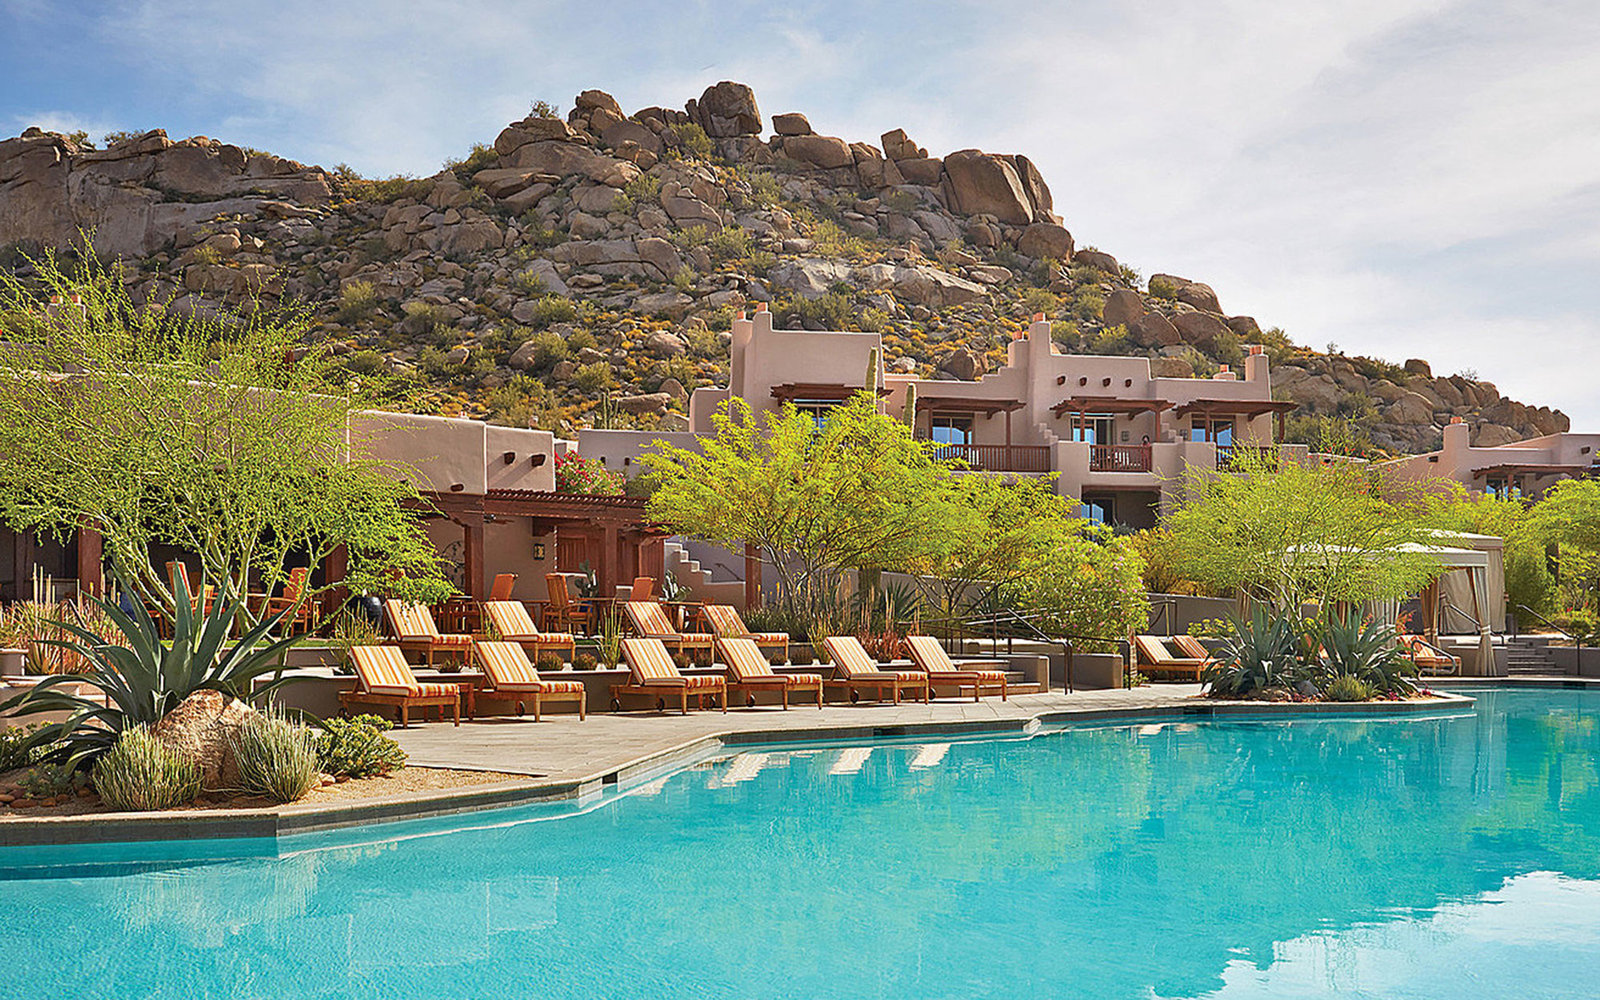 Arizona: Four Seasons Resort Scottsdale at Troon North